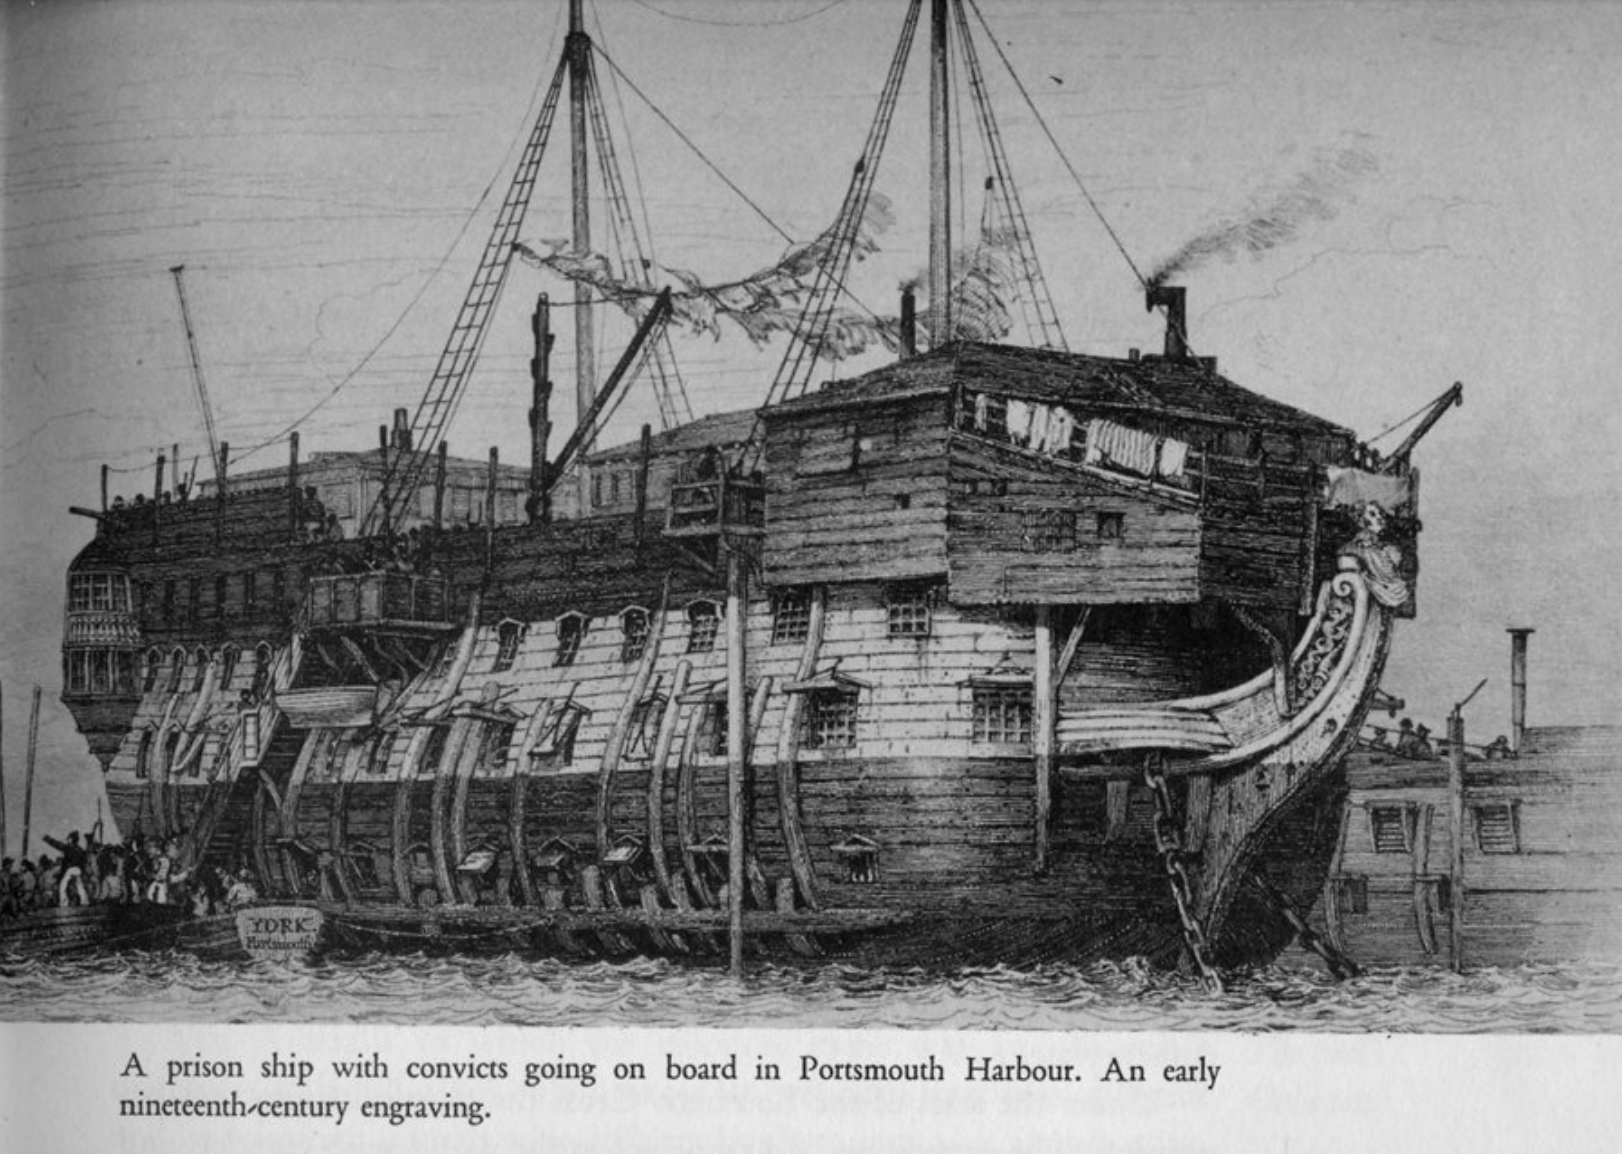 Illustration of a prison ship with convicts boarding.